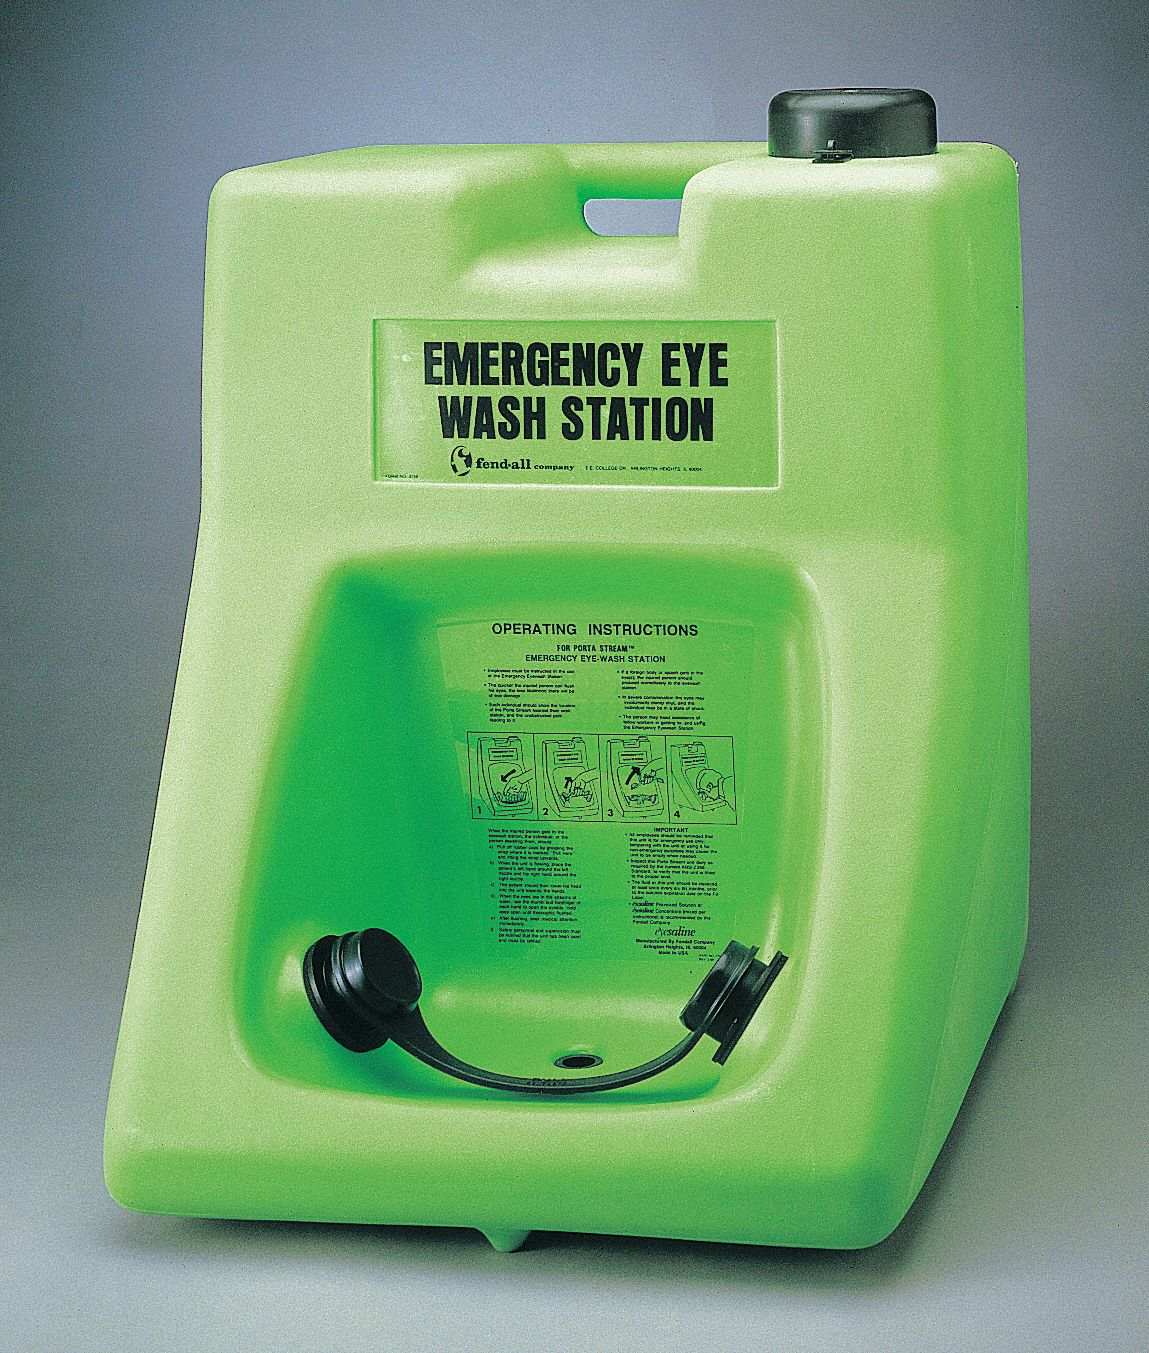 Eye Wash Station,  16.0 gal Tank Capacity,  Activates By Elastomeric Pull Strap